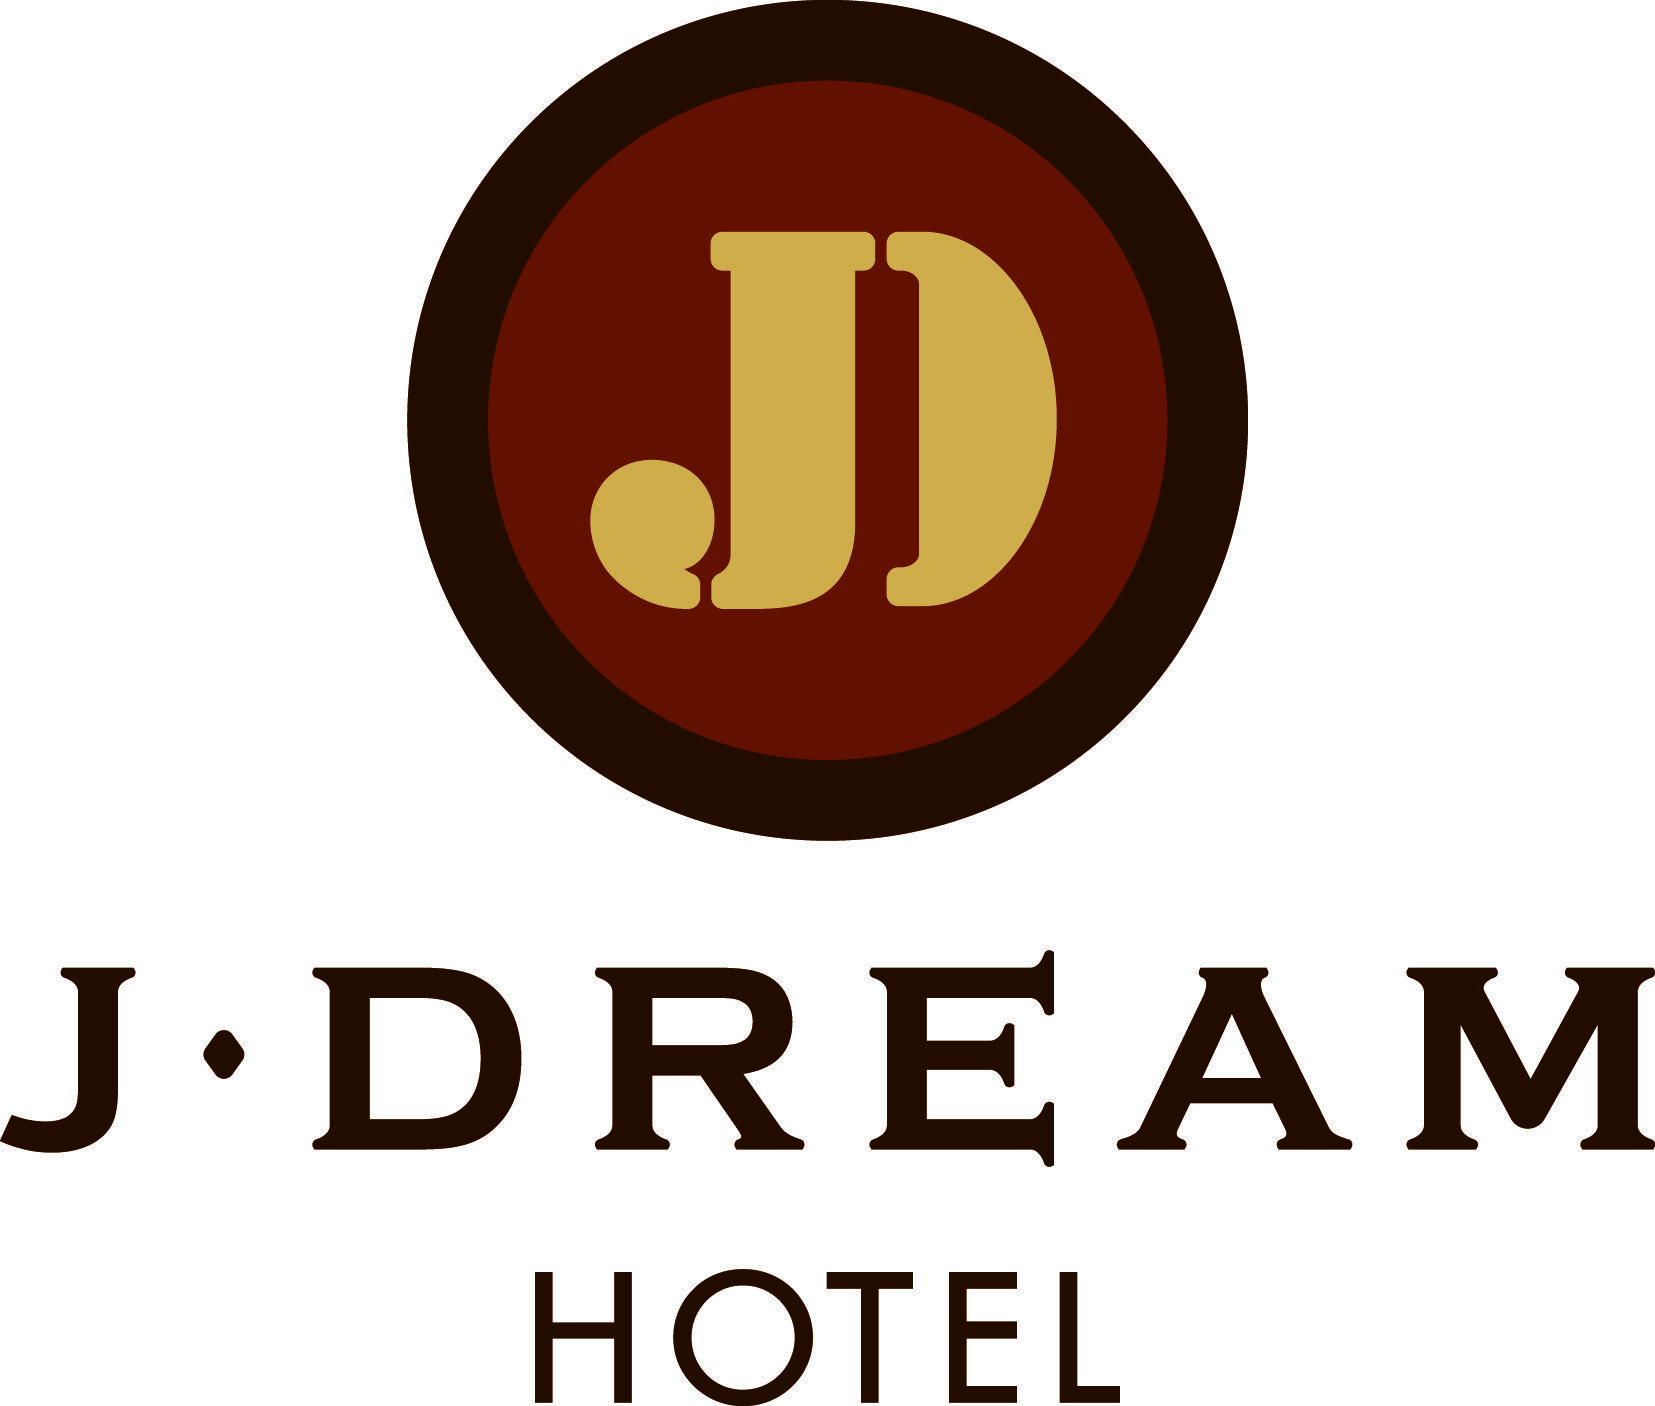 Floral Hotel · J.Dream Jeju